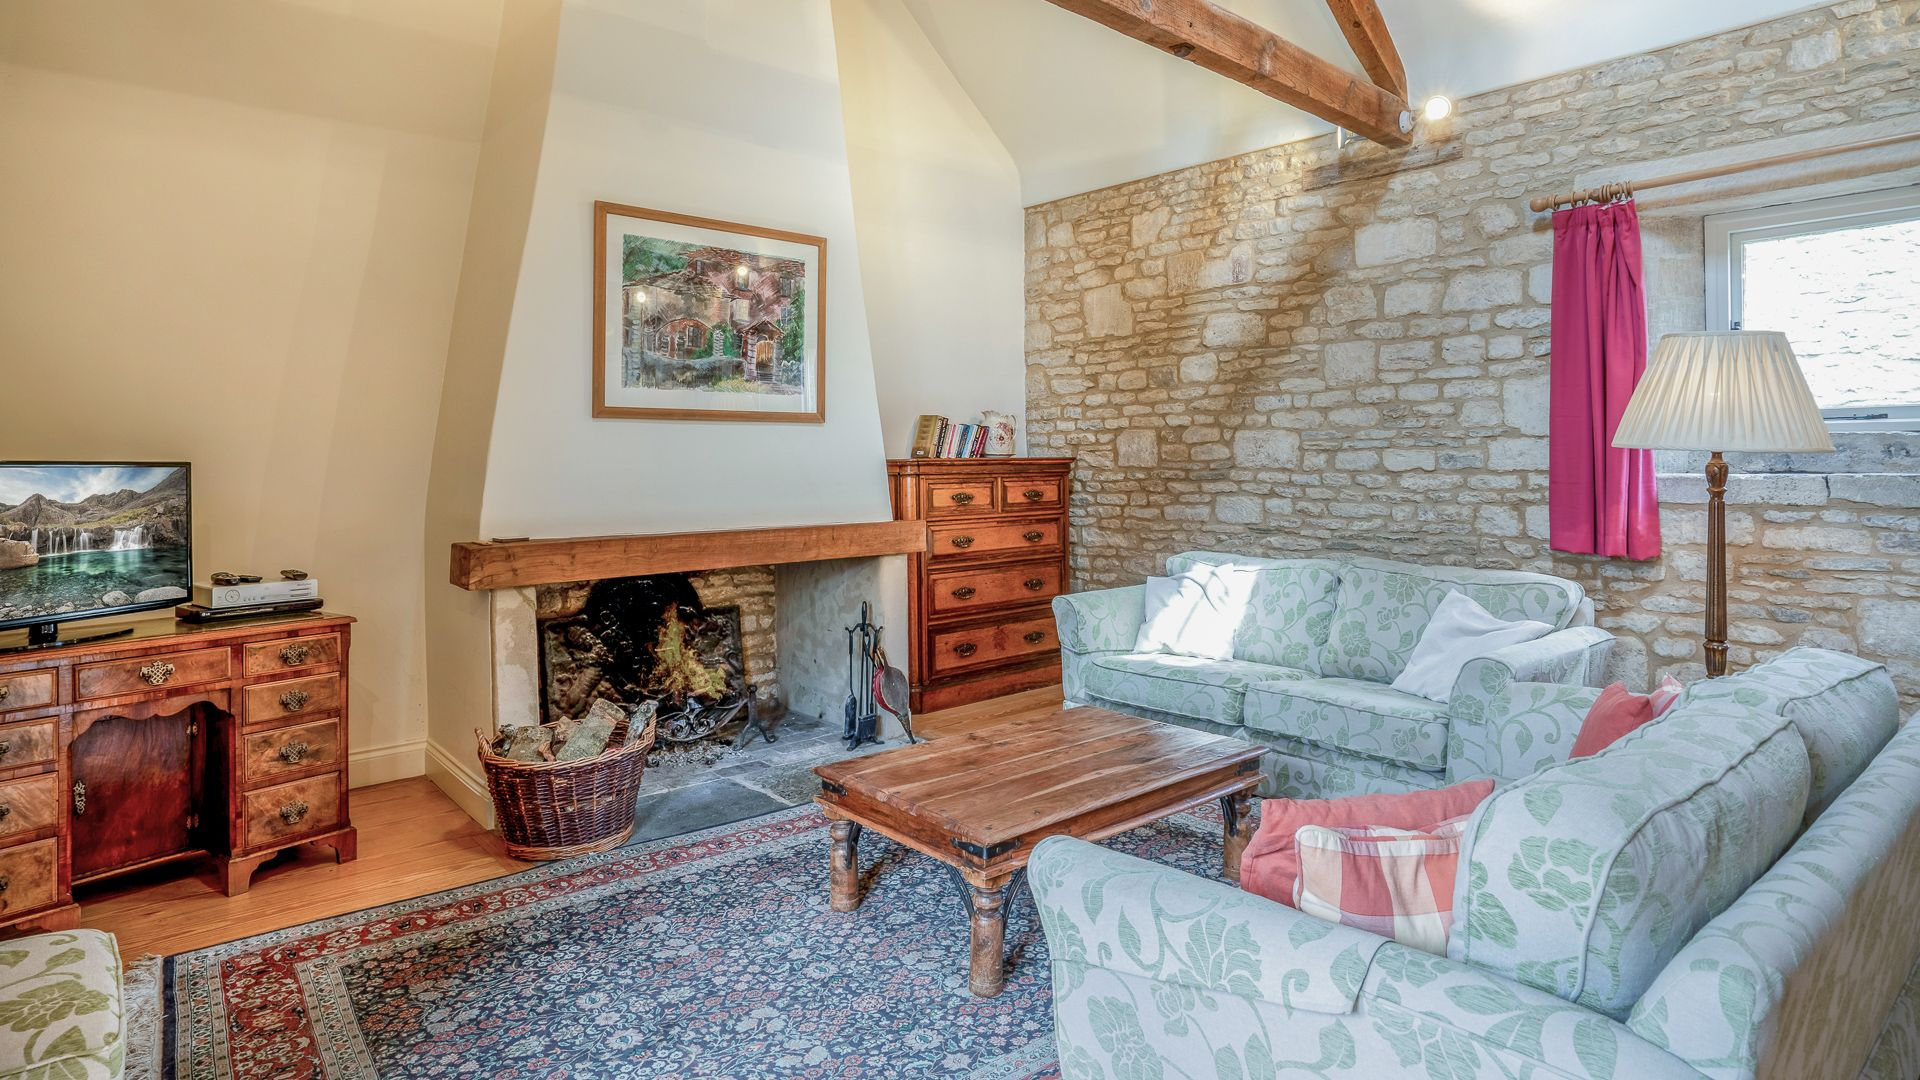 Living area and open fire, Aylworth Manor Granary, Bolthole Retreats